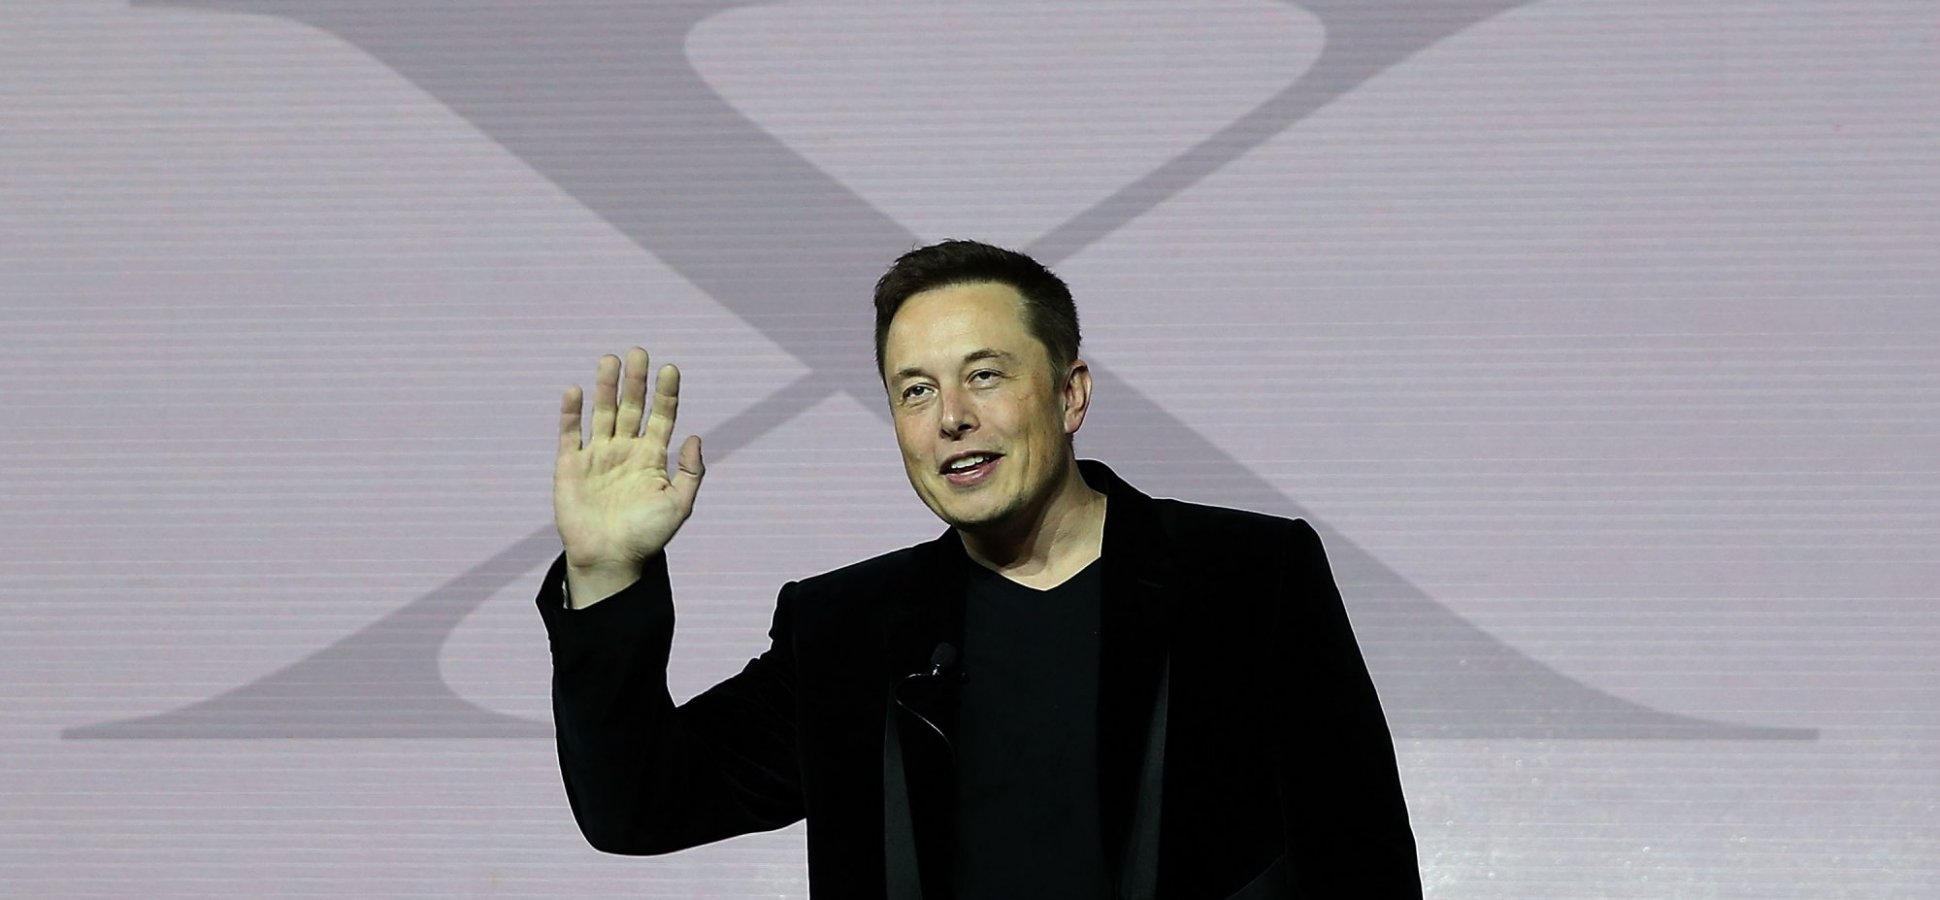 Want to Get a Job With Elon Musk? You May Want to Study These 16 Interview Questions